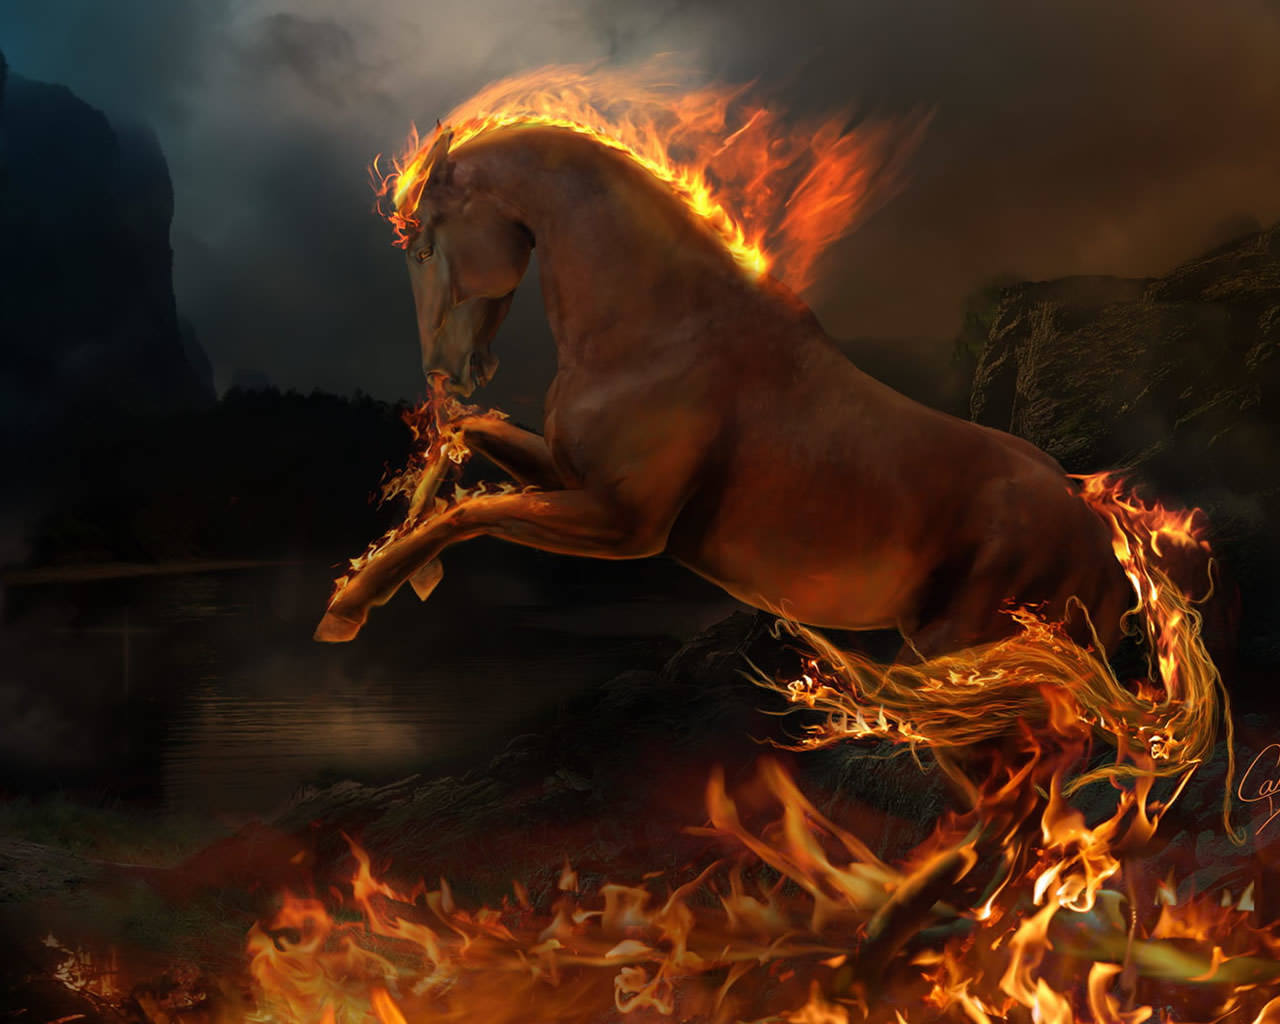 3D Burning Horse Wallpaper 1280x1024